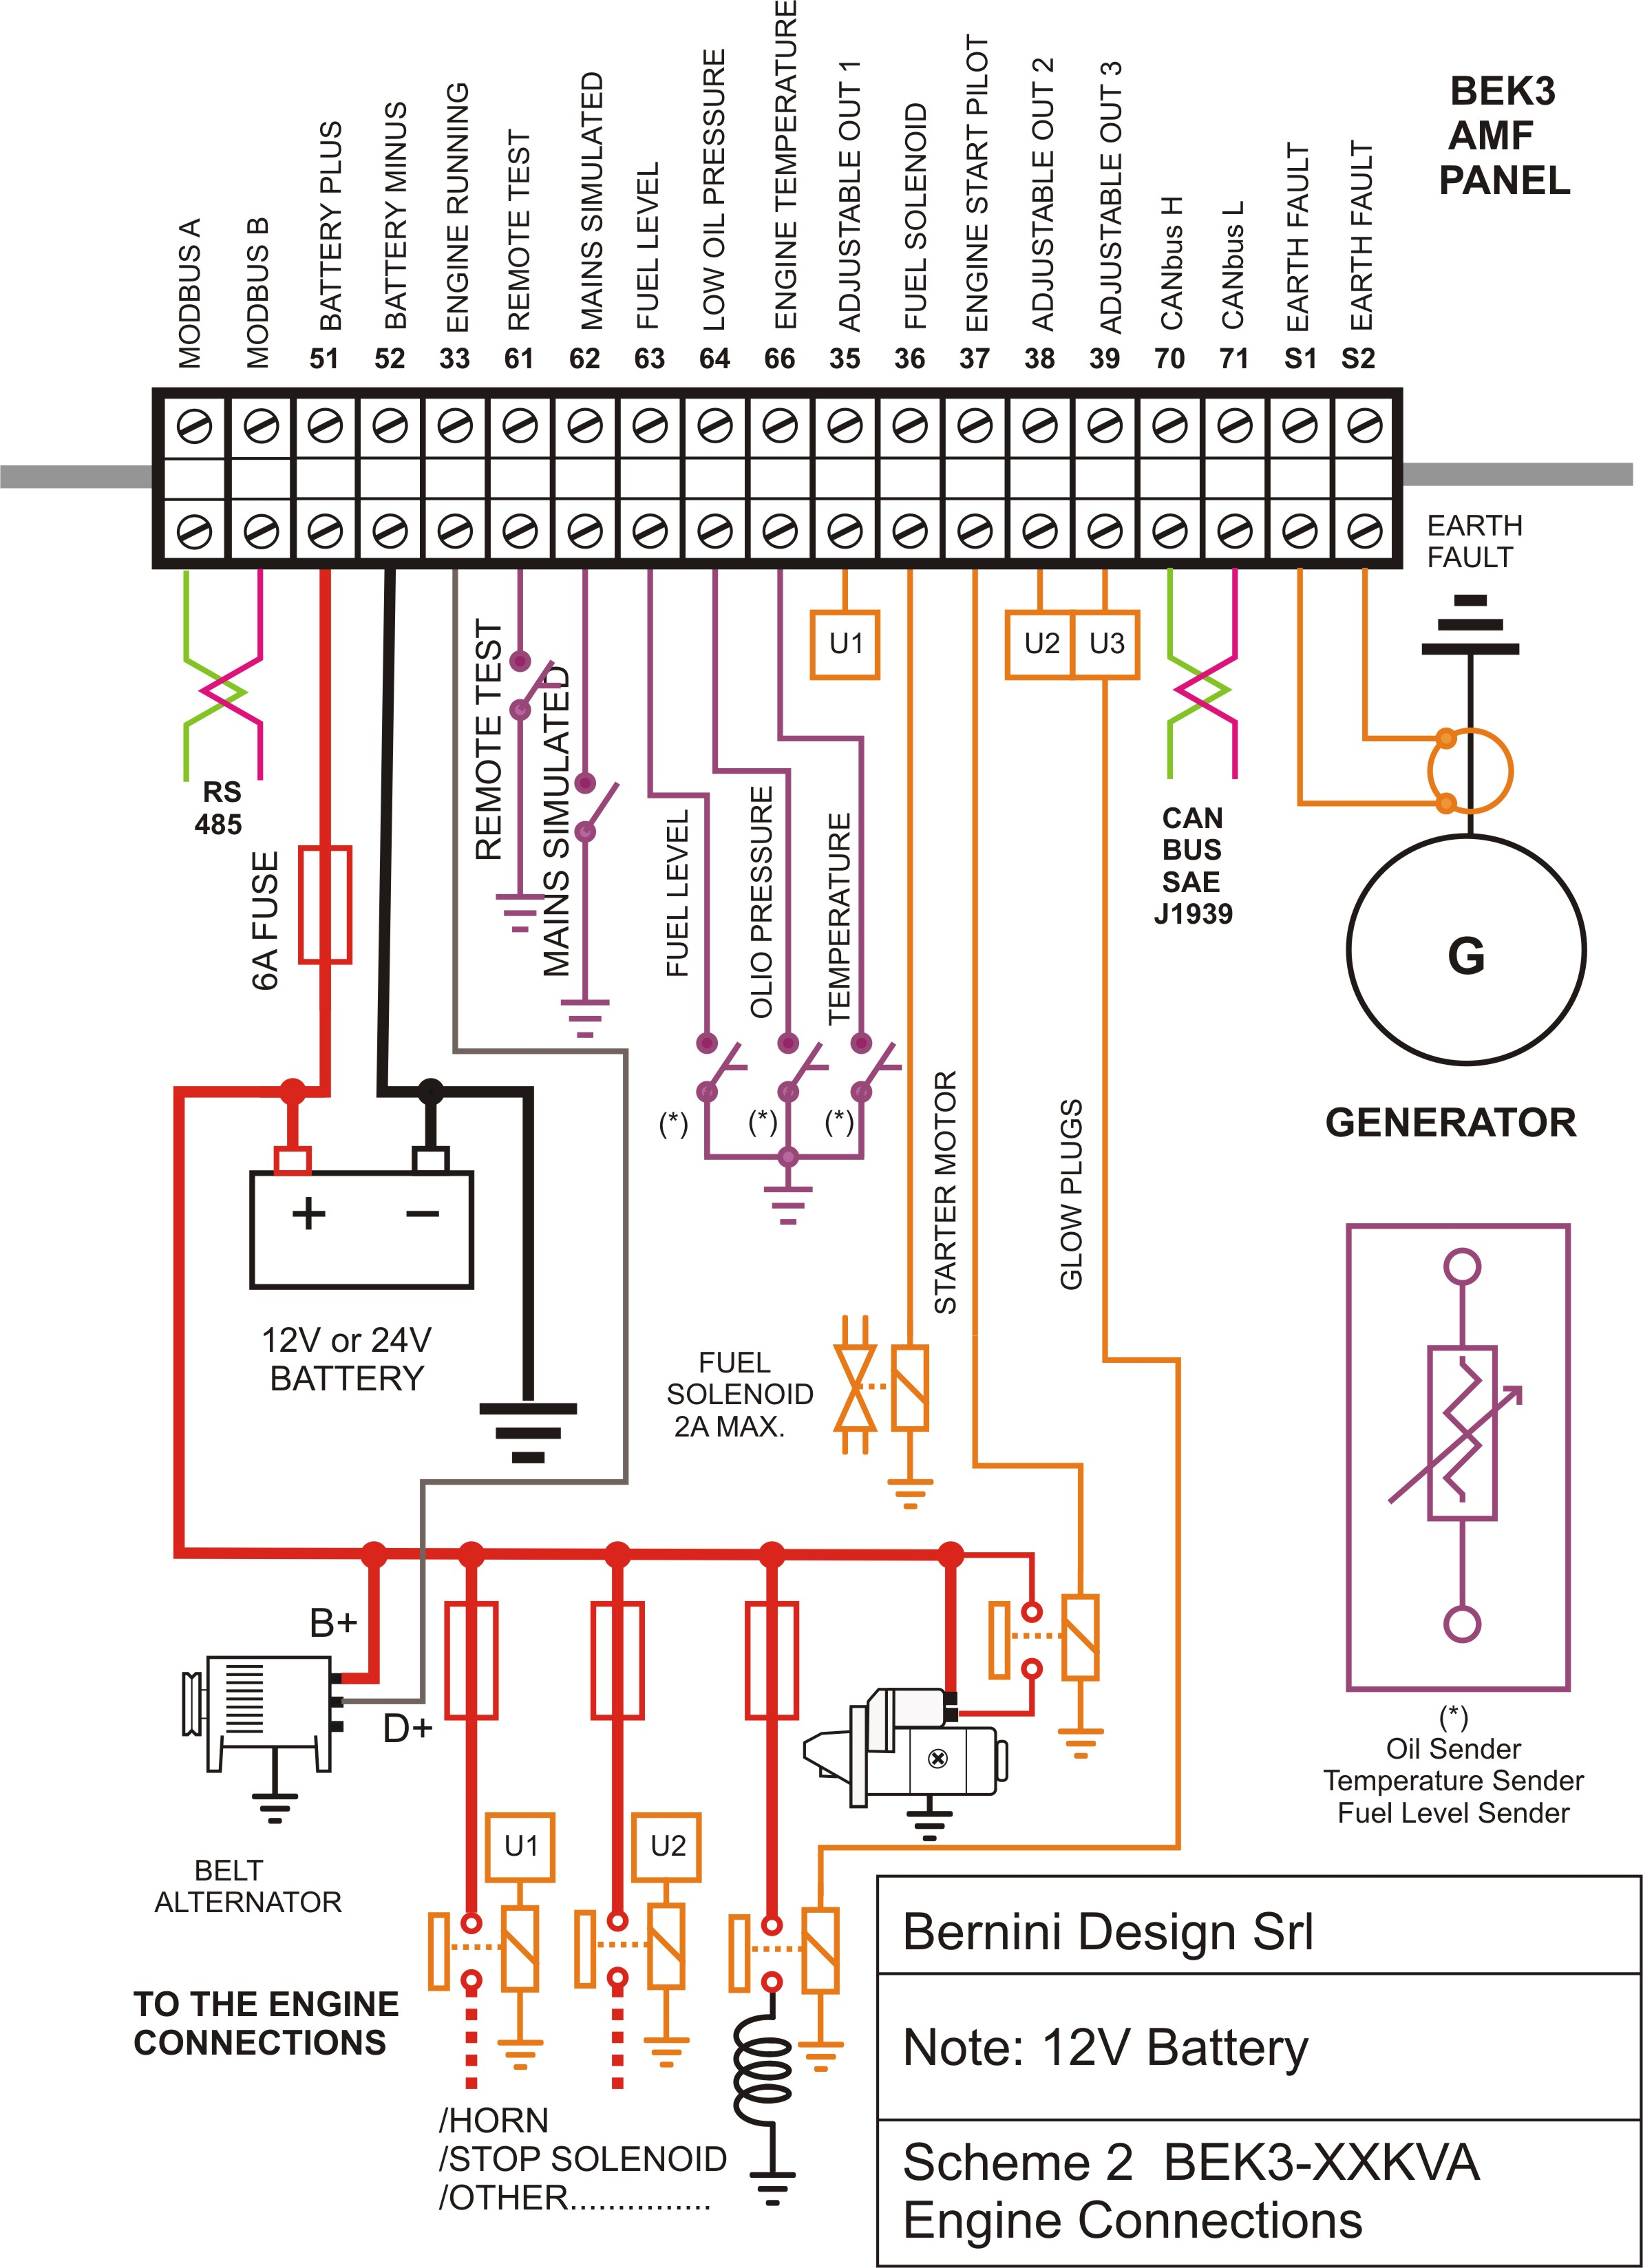 Diesel Generator Control Panel Wiring Diagram Engine Connections?resized665%2C9186ssld1 caterpillar generator schematic diagram efcaviation com Caterpillar SR4B Model Specification Sheet at eliteediting.co